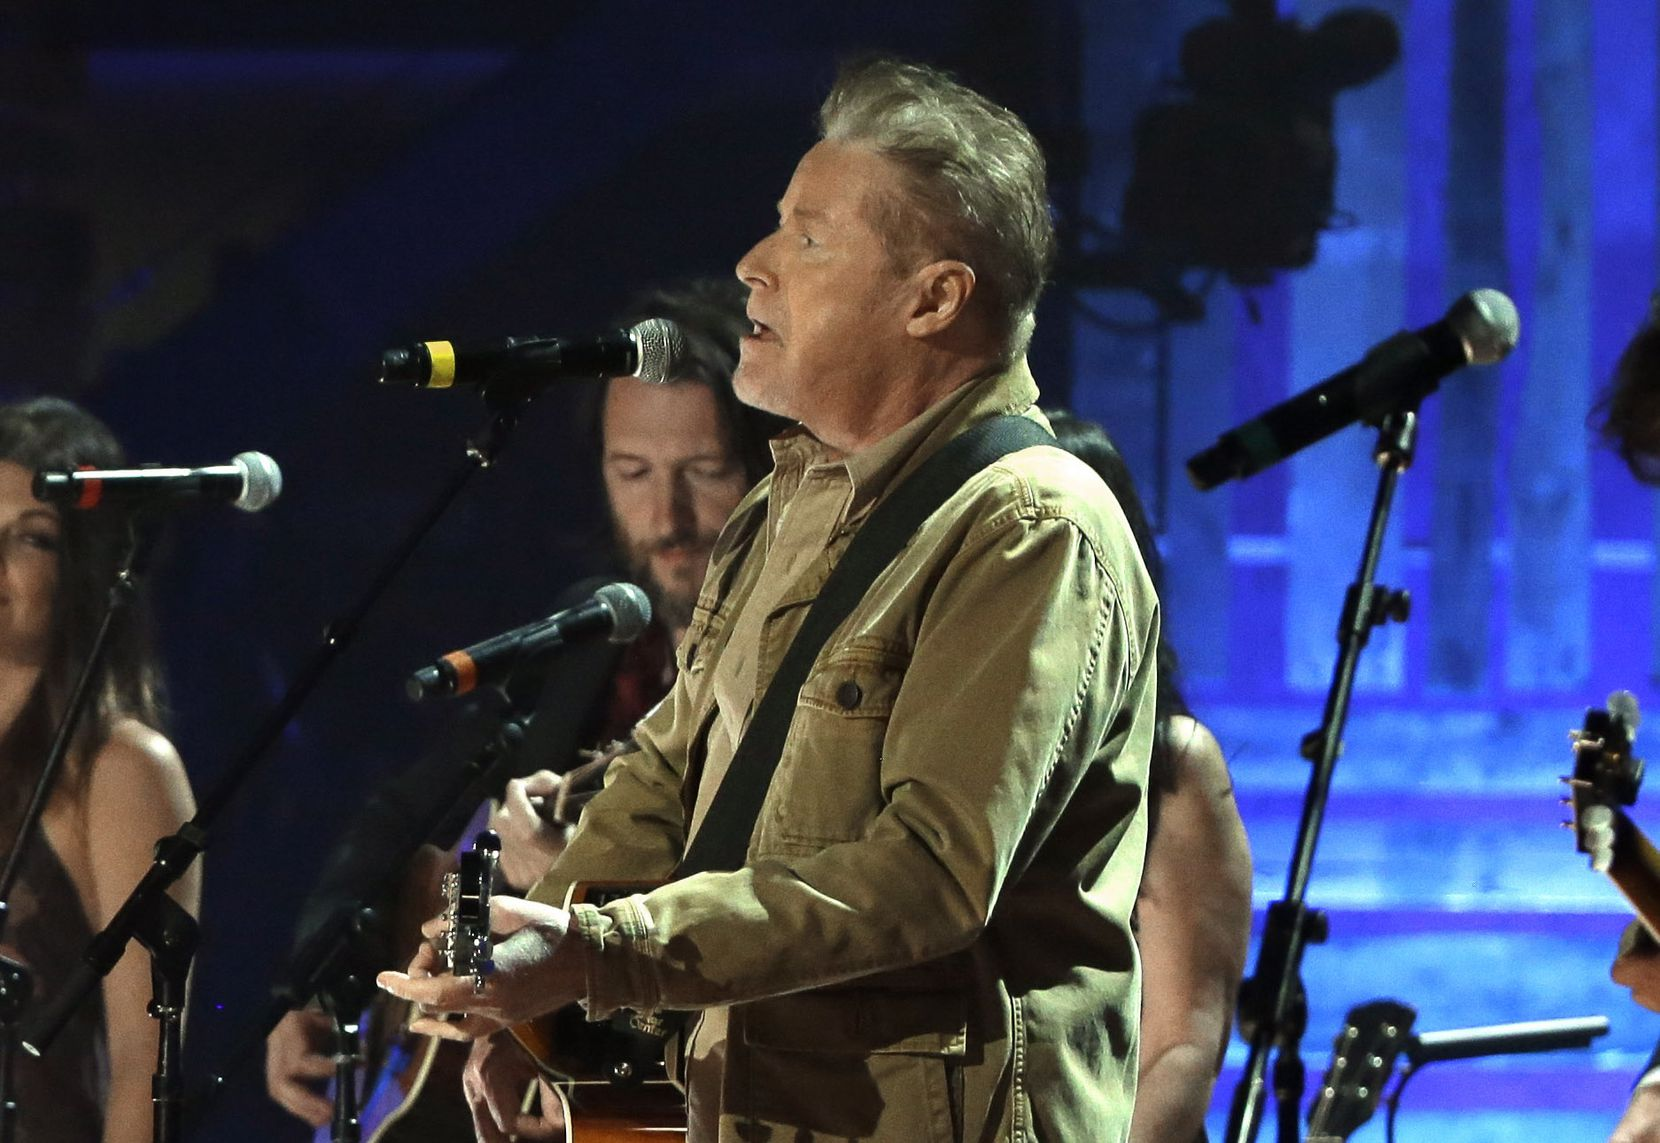 Don Henley performs at the recent Americana Music Honors and Awards show in Nashville, Tenn. (AP Photo/Mark Zaleski)